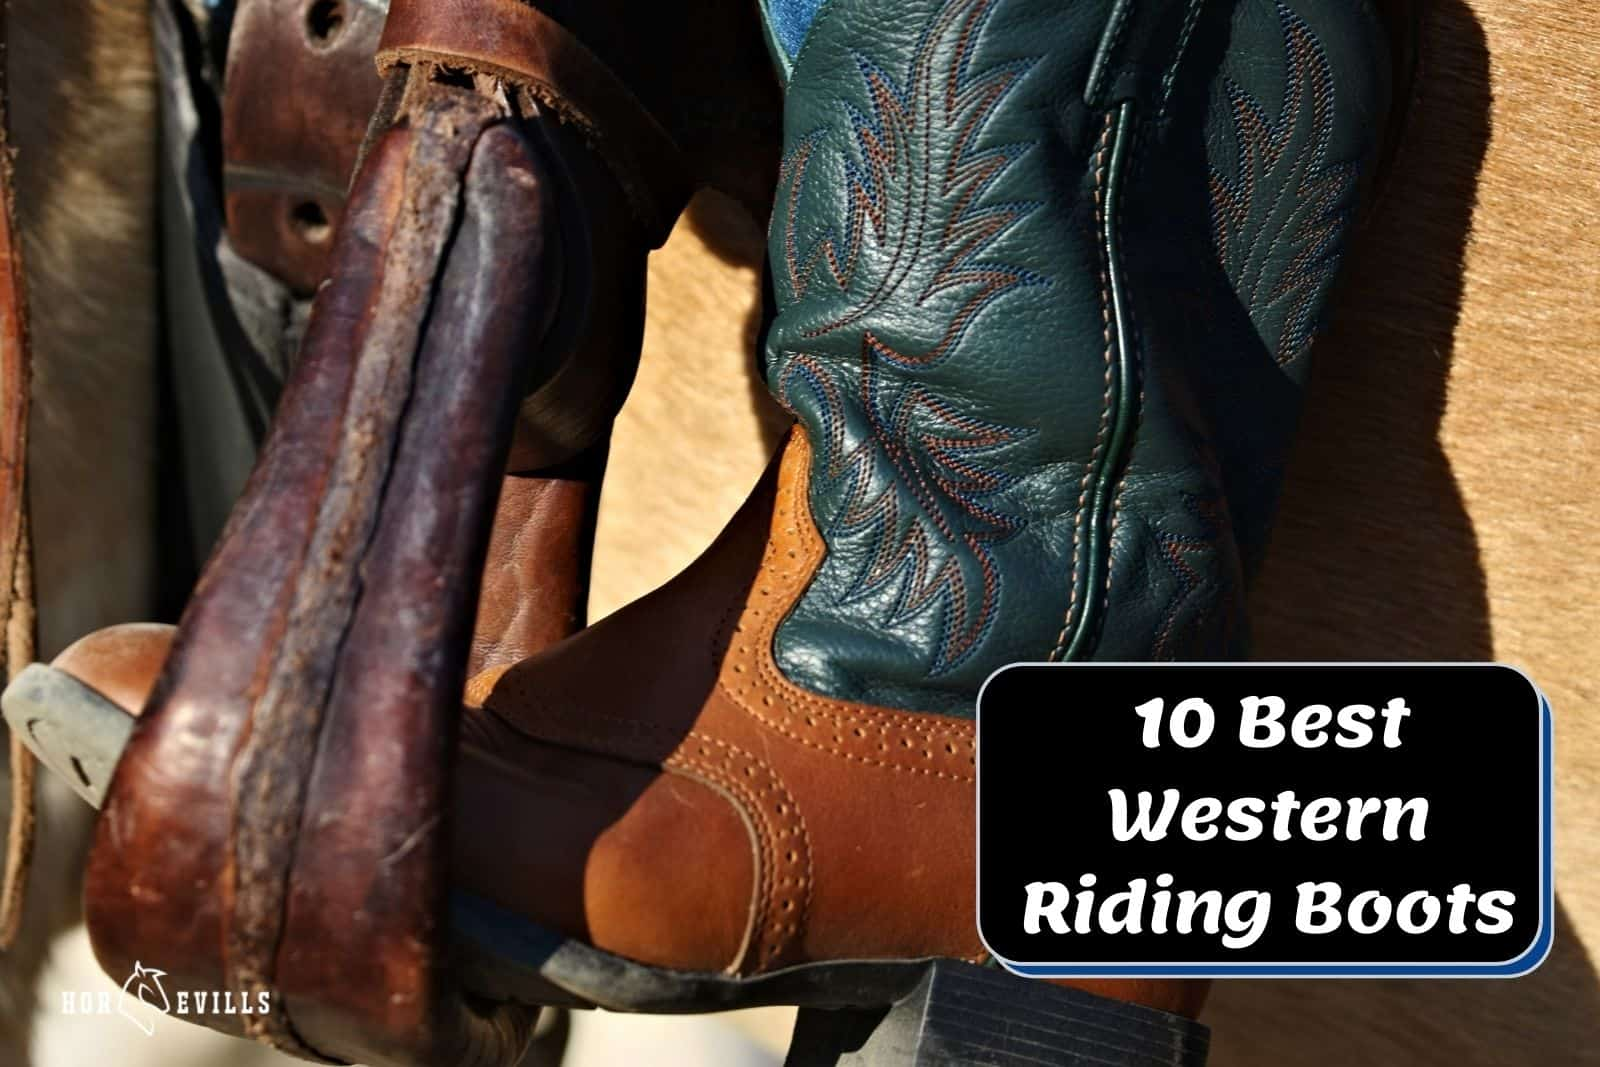 close-up shot of one of the best western riding boots